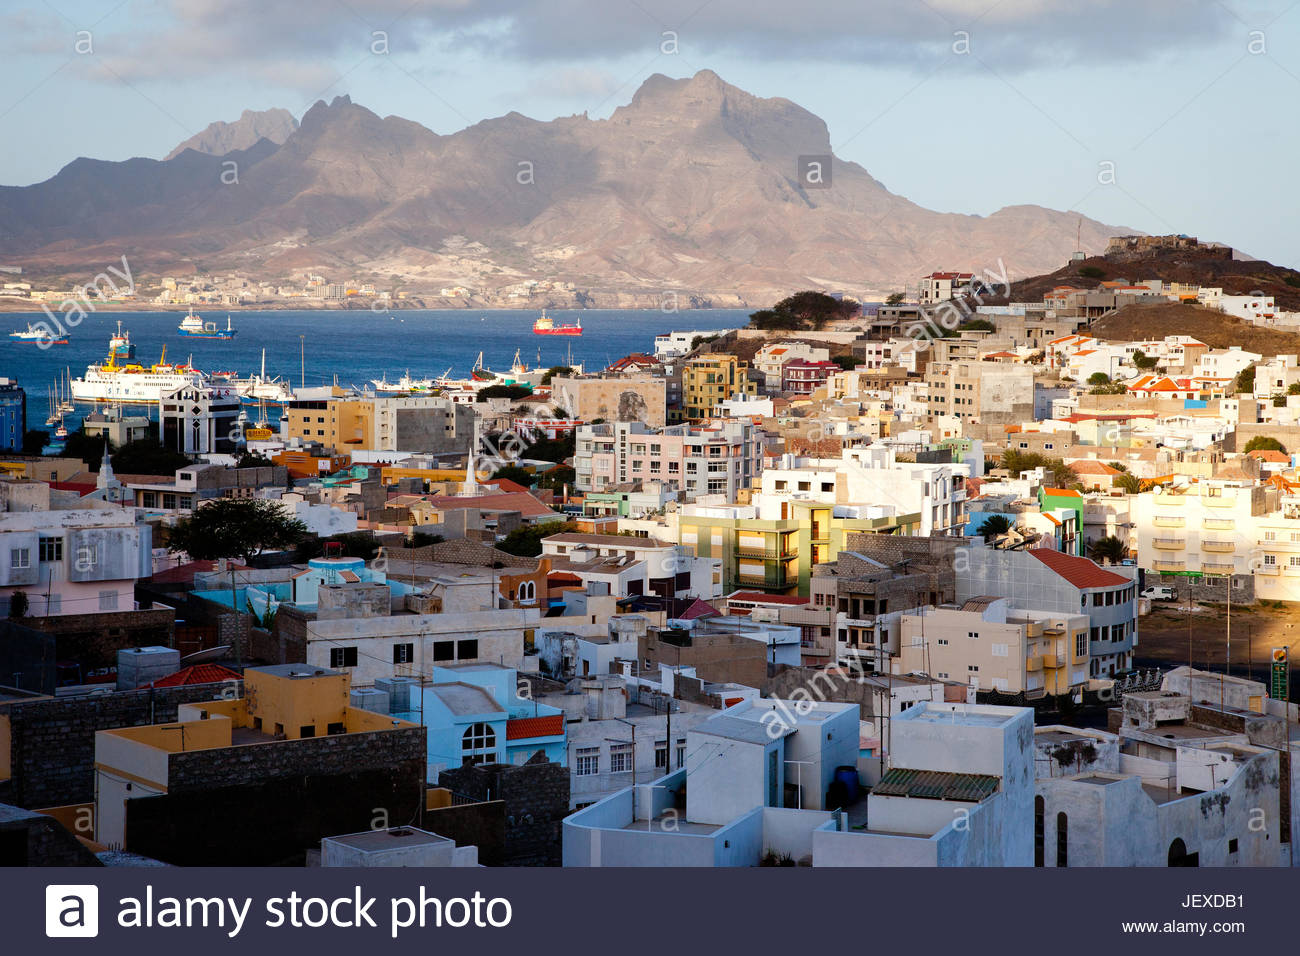 The bright colors of Mindelo, the main city on the island of Sao Vicente. - Stock Image